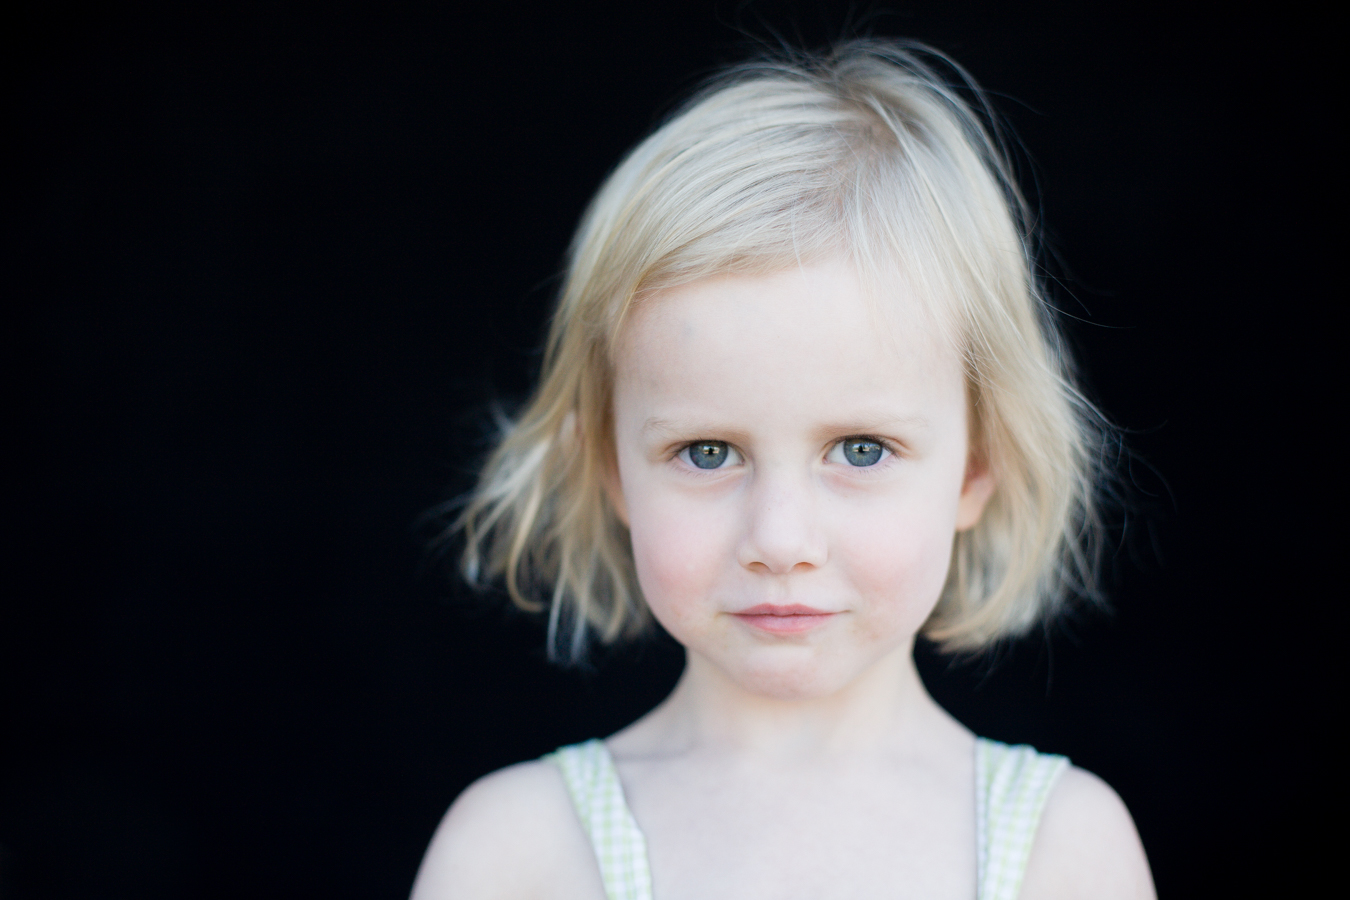 School Portrait Photography Evergreen Colorado